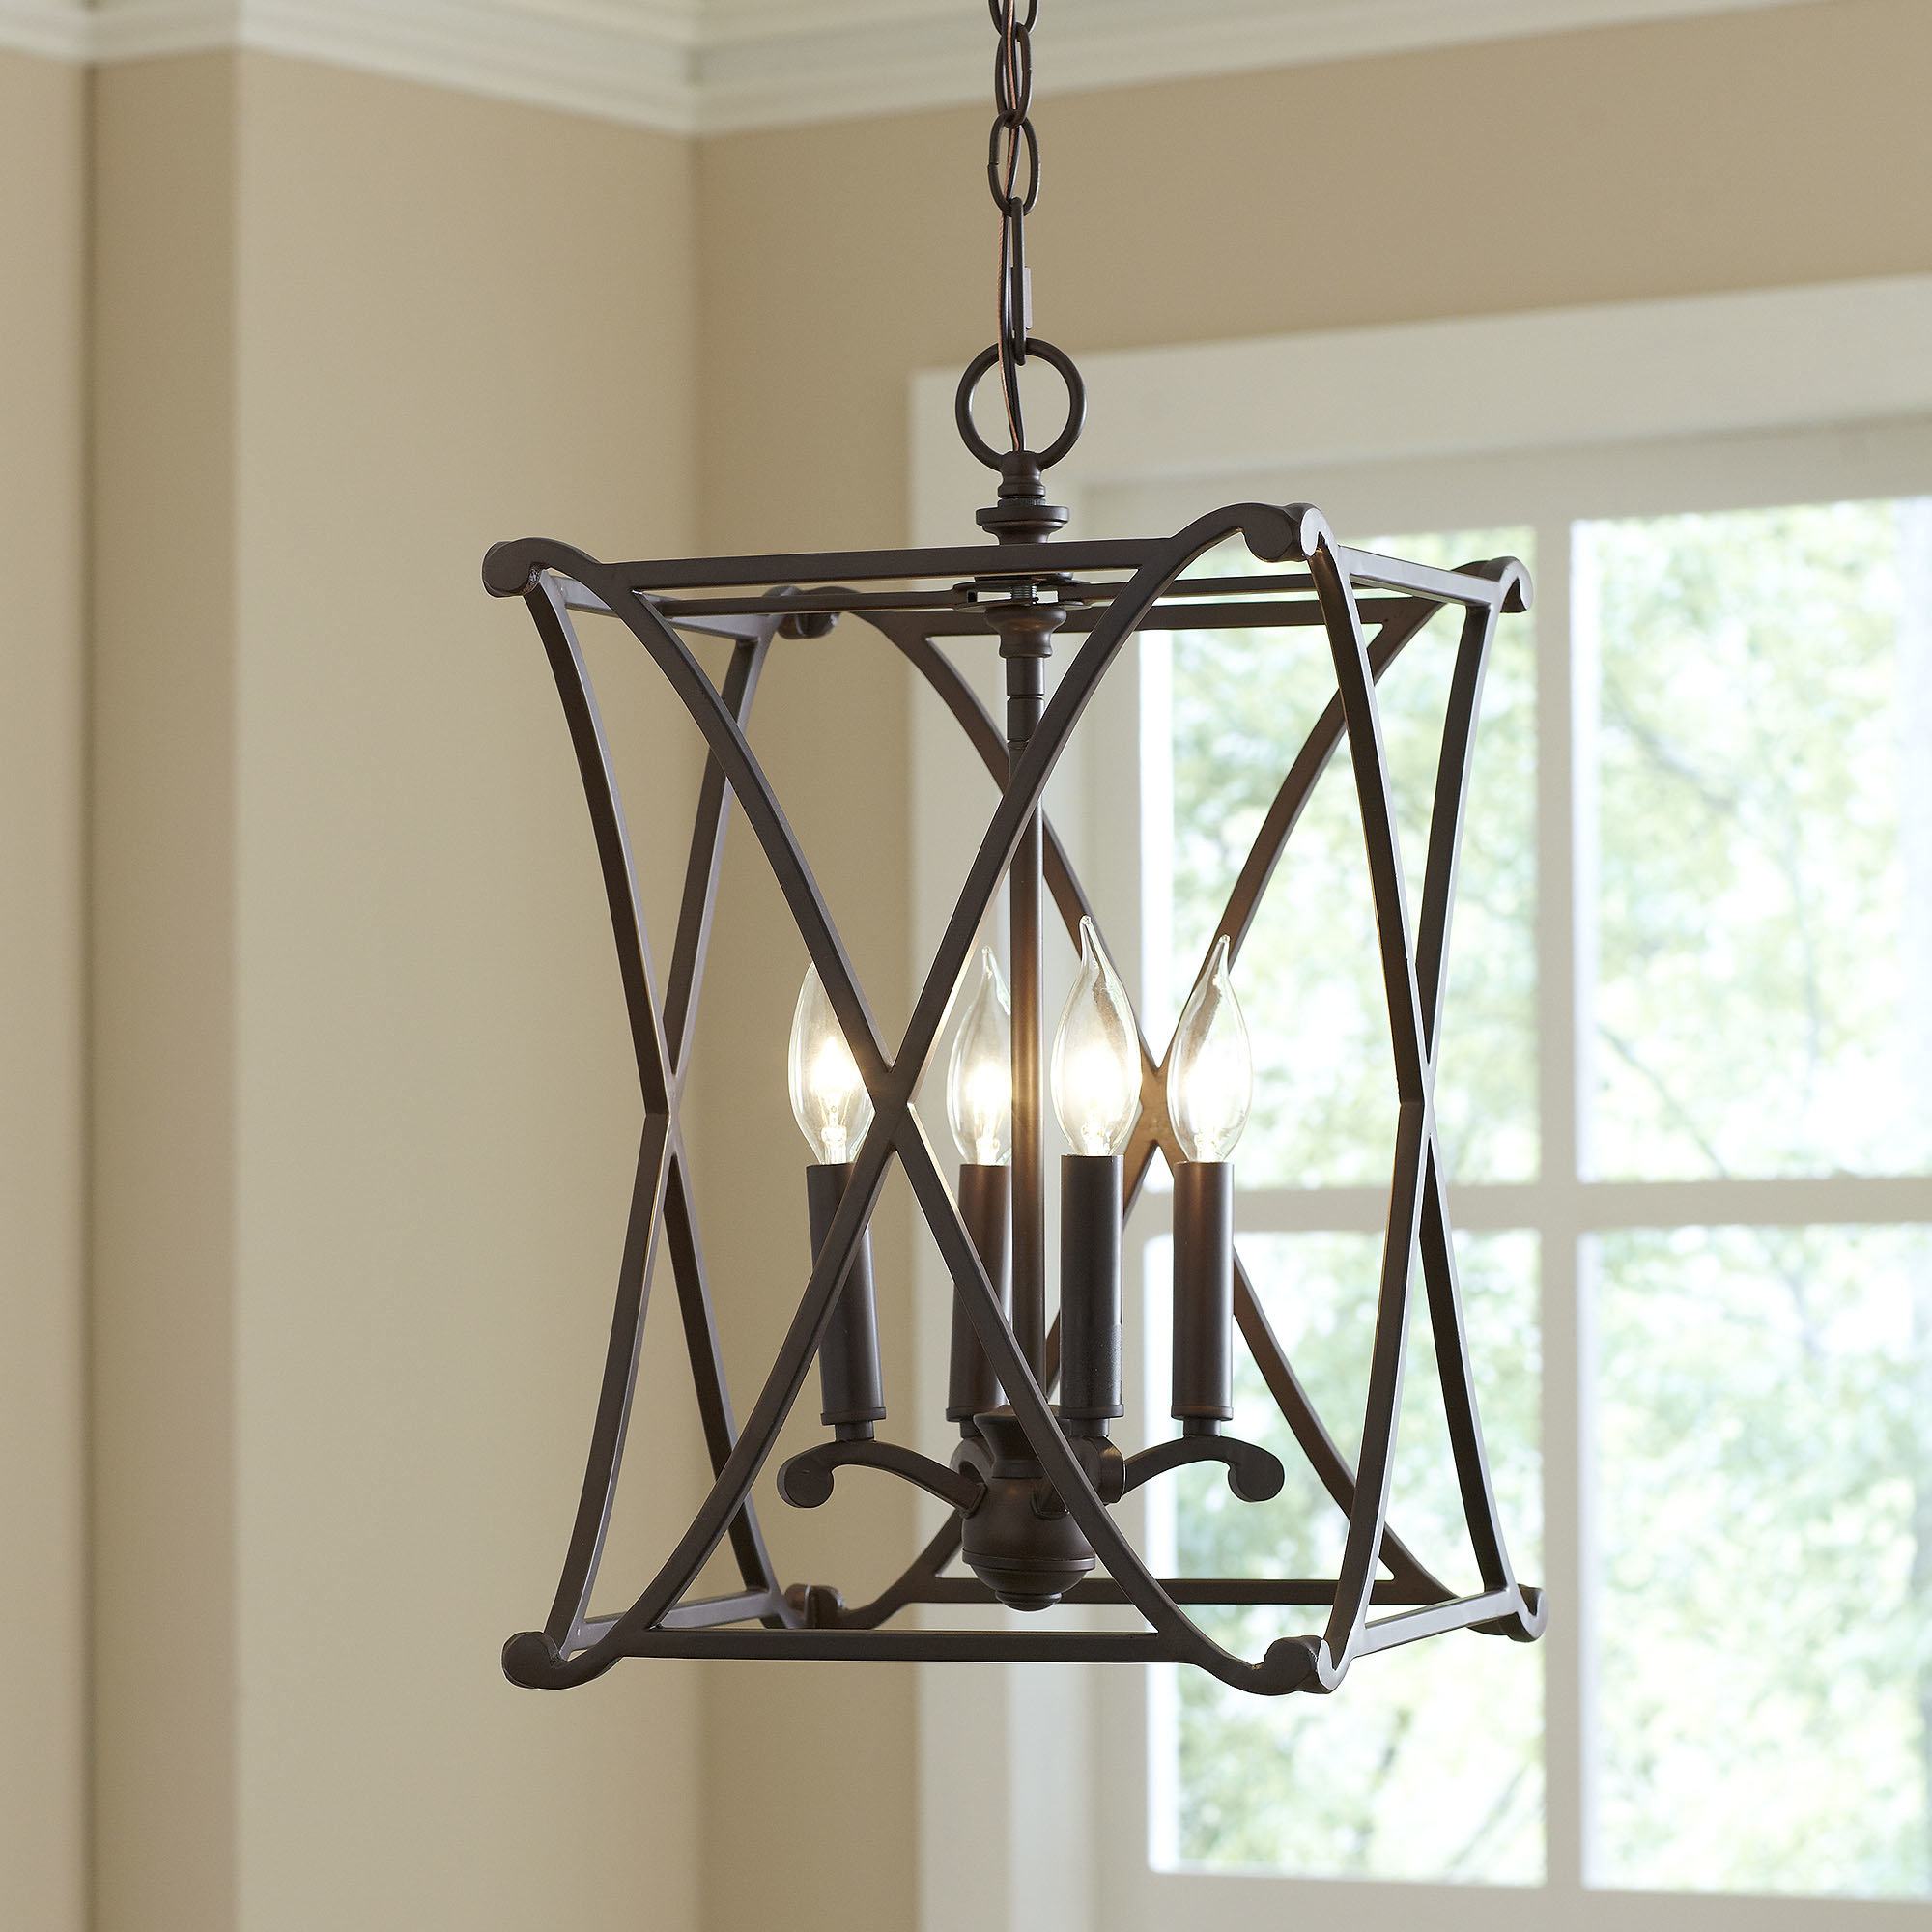 Nisbet 6 Light Lantern Geometric Pendant With Regard To Most Recently Released Nisbet 6 Light Lantern Geometric Pendants (Gallery 1 of 20)